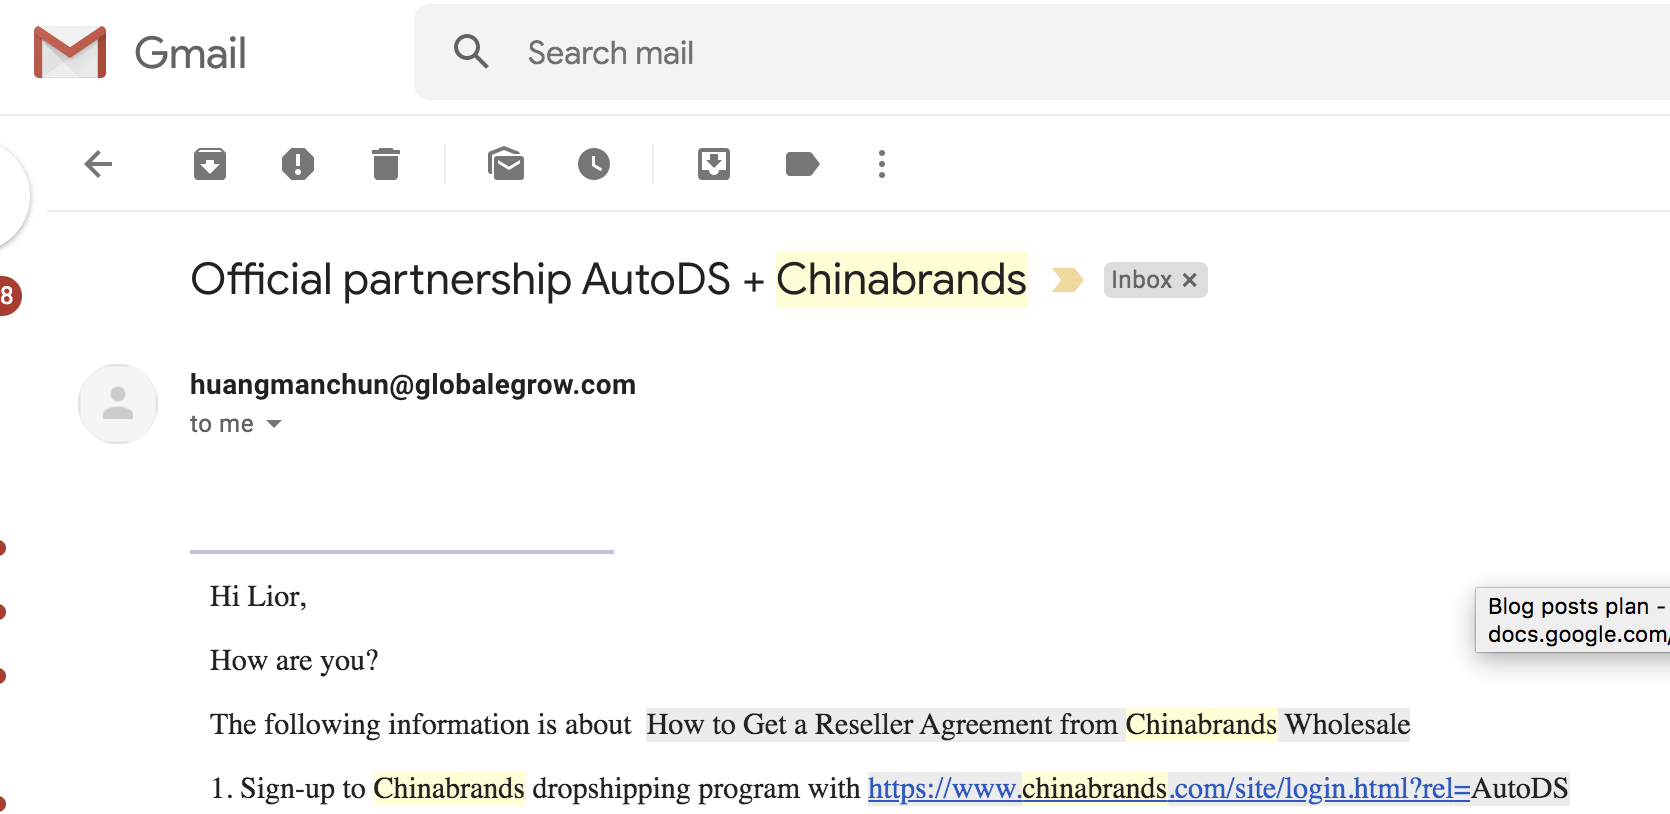 Official Partnership AutoDS + Chinabrands